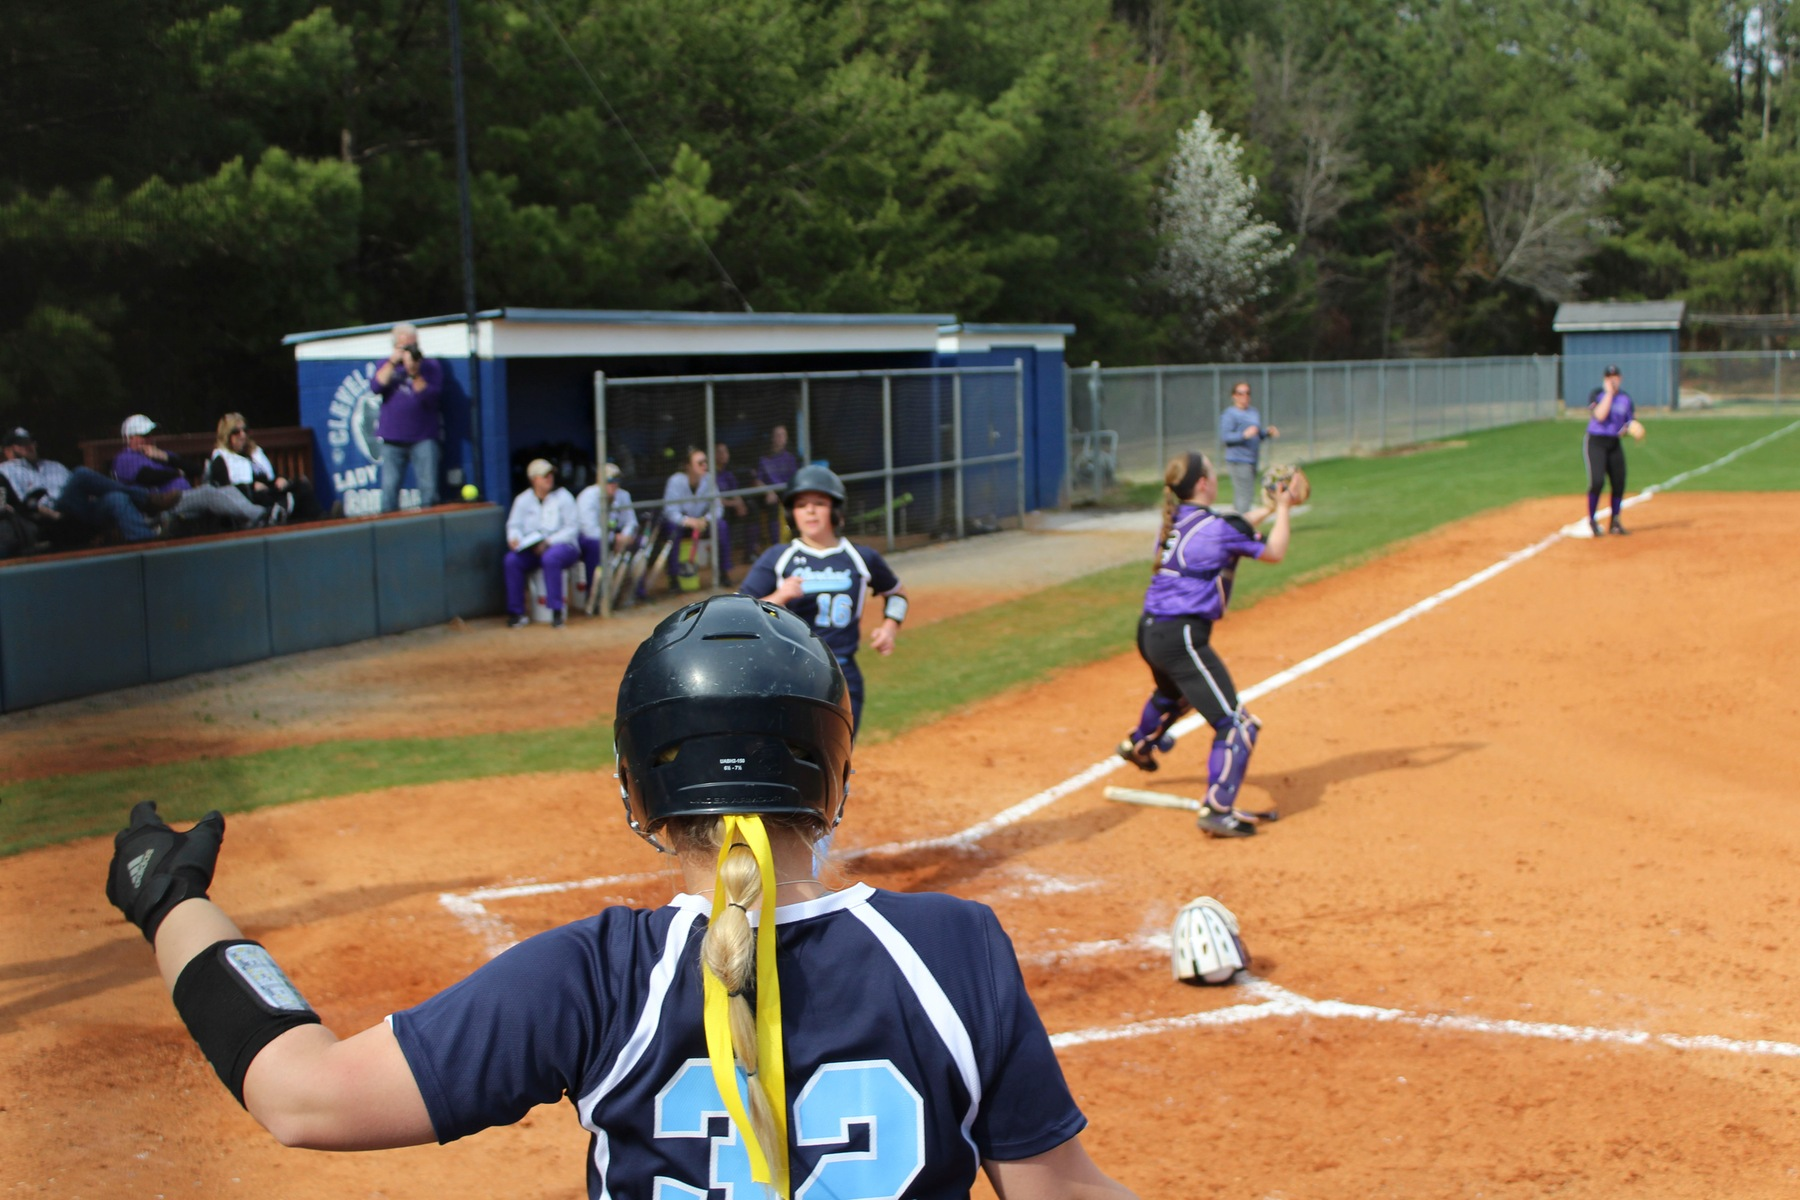 PREVIEW: Softball at Roane State This Weekend